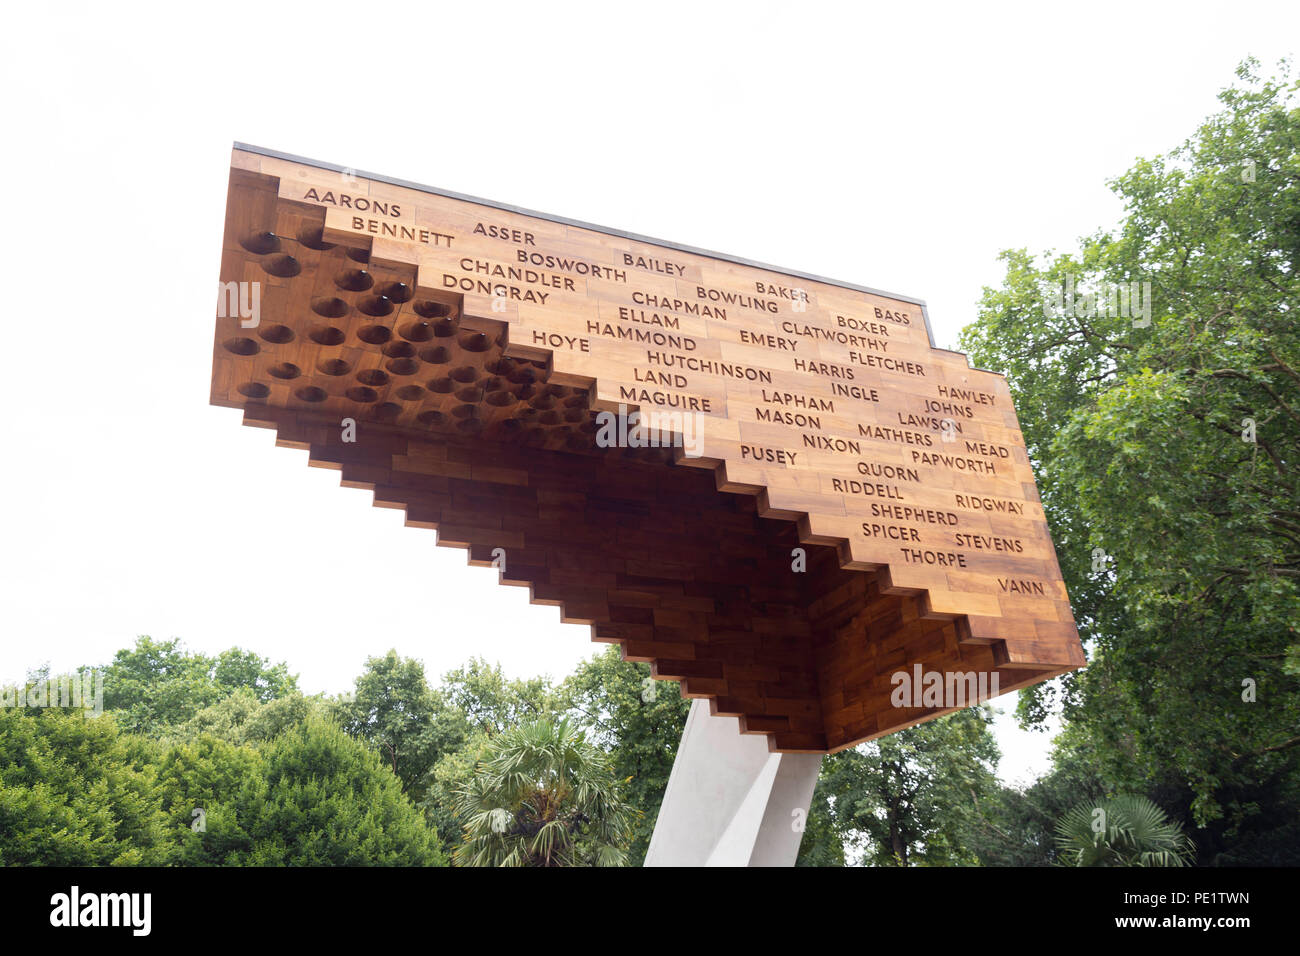 'Stairway to Heaven' sculpture in Bethnal Green Gardens, Bethnal Green, The London Borough of Tower Hamlets, Greater London, England, United Kingdom - Stock Image